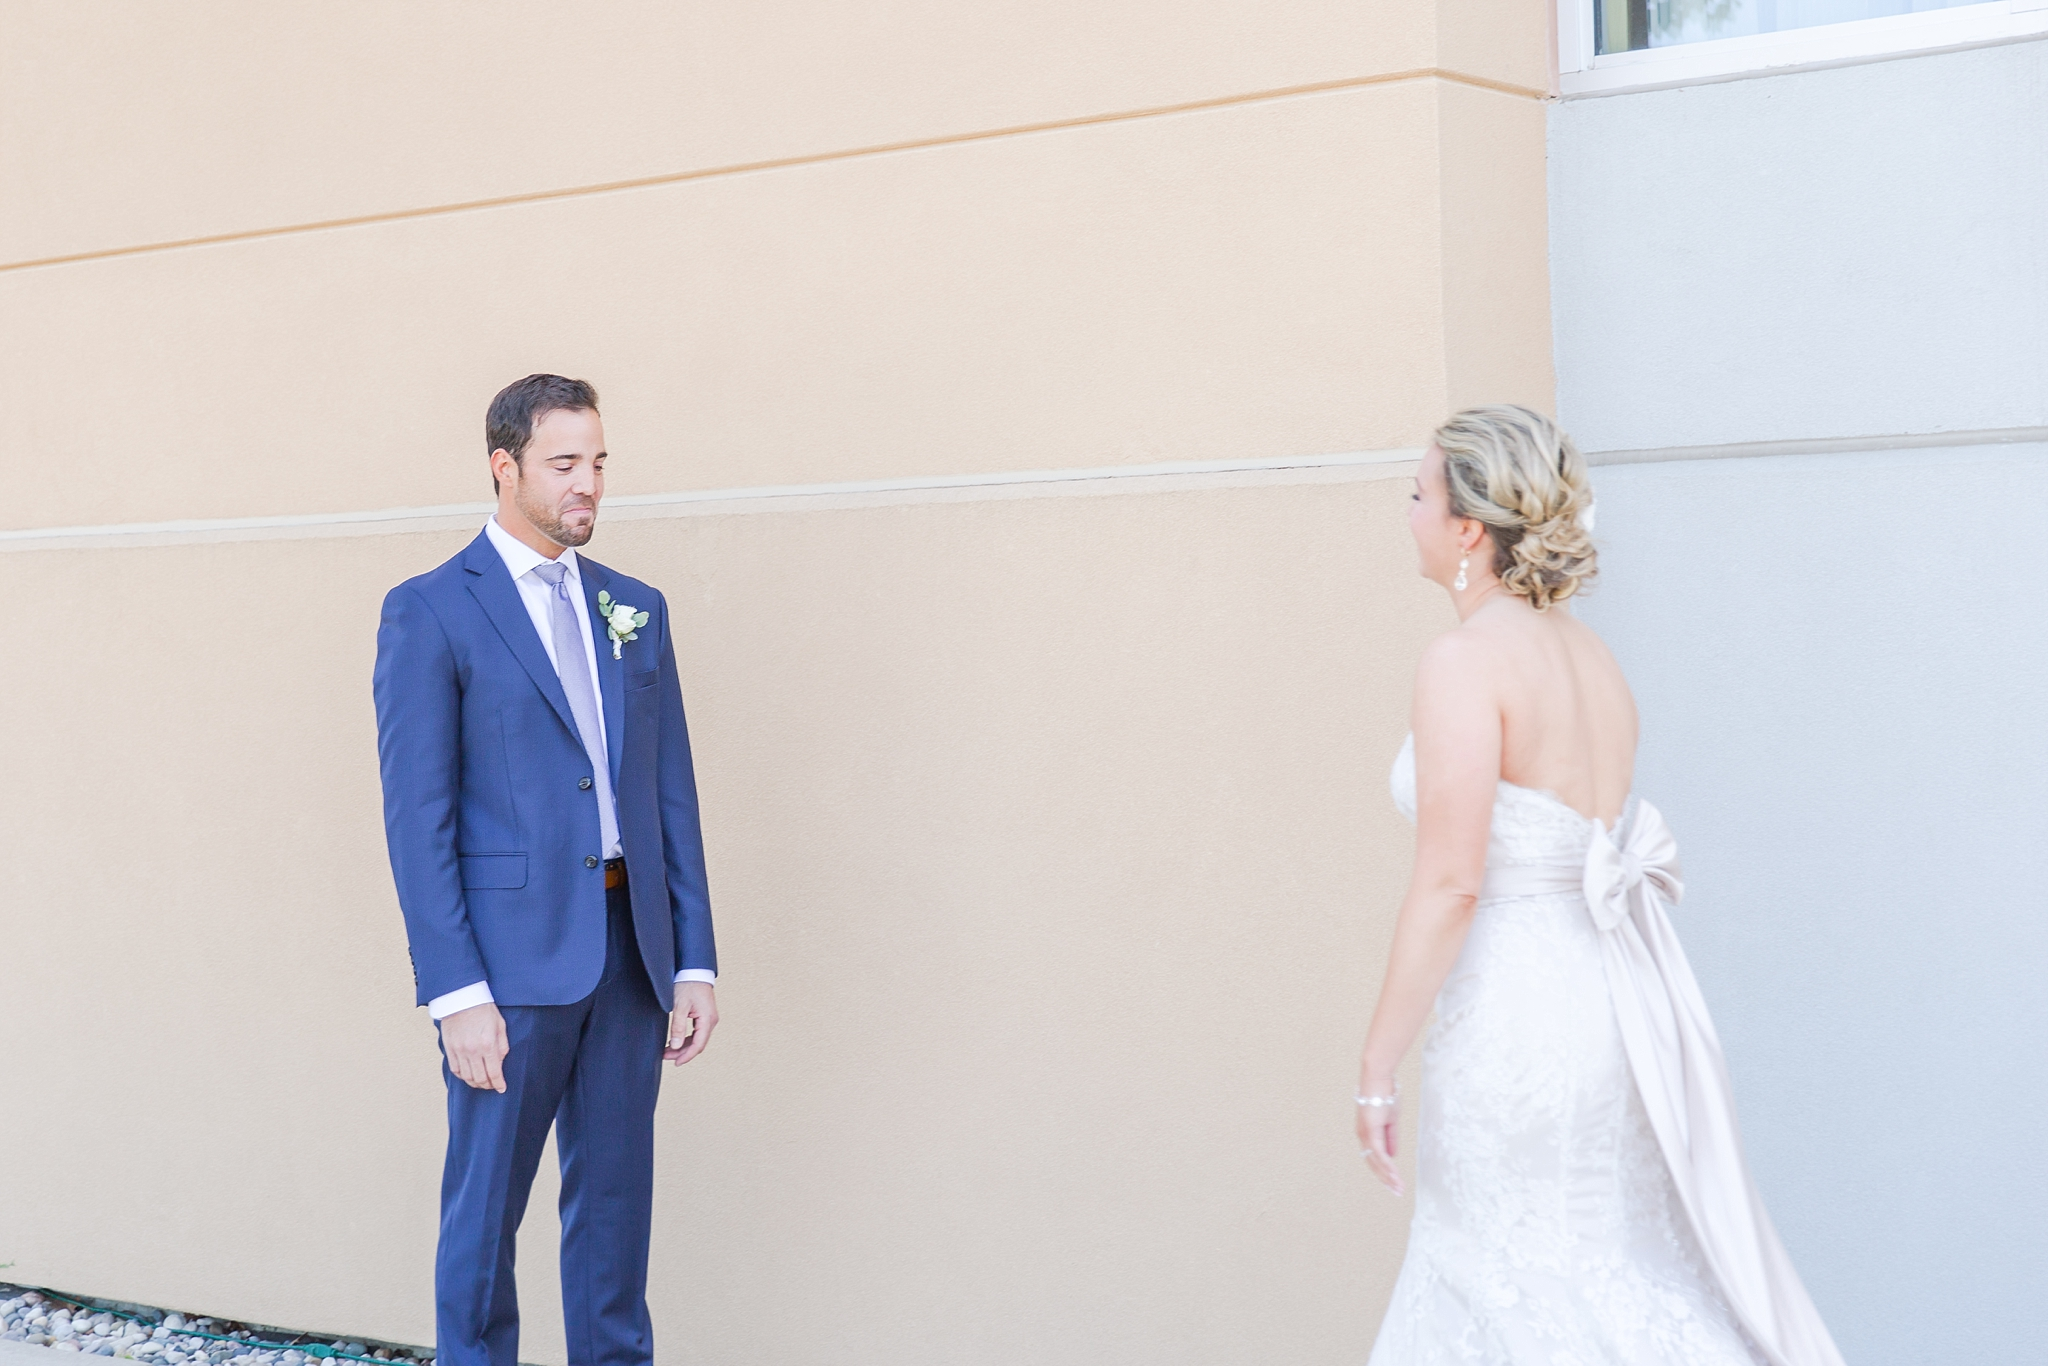 fun-candid-laid-back-wedding-photos-at-wellers-carriage-house-in-saline-michigan-and-at-the-eagle-crest-golf-resort-by-courtney-carolyn-photography_0019.jpg